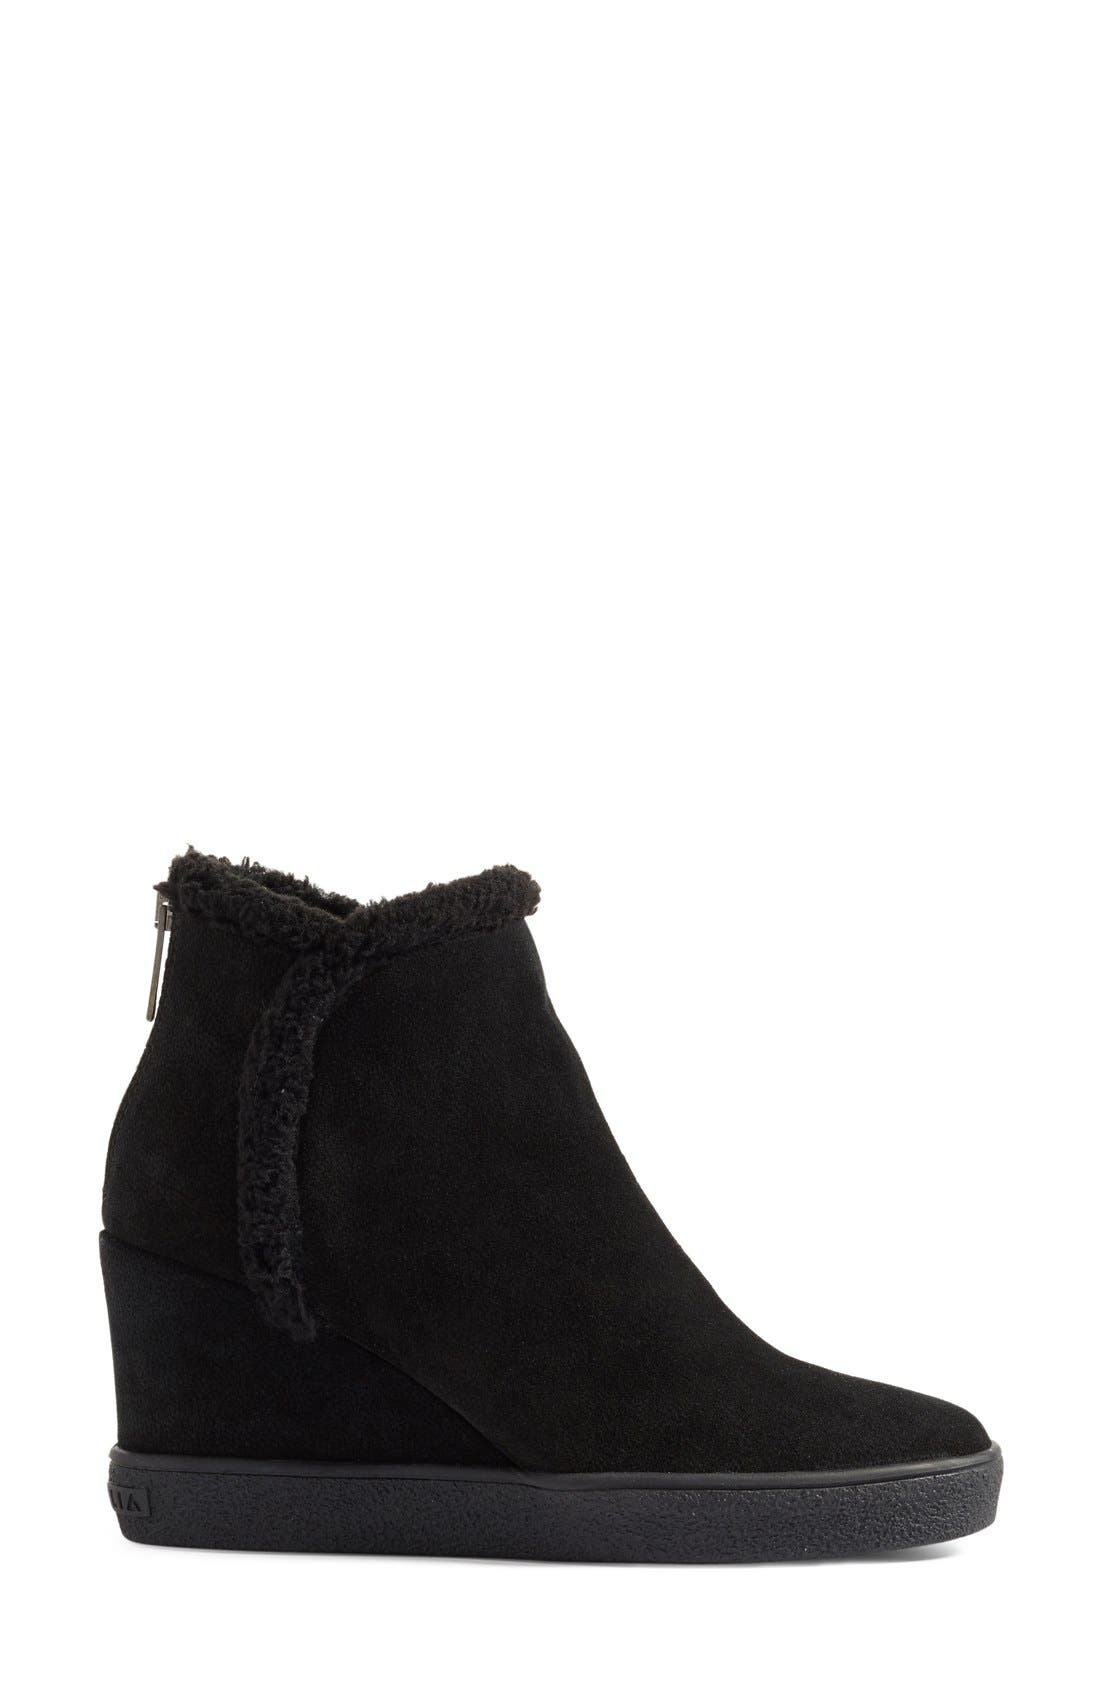 Charlie Weatherproof Hidden Wedge Bootie,                             Alternate thumbnail 4, color,                             001